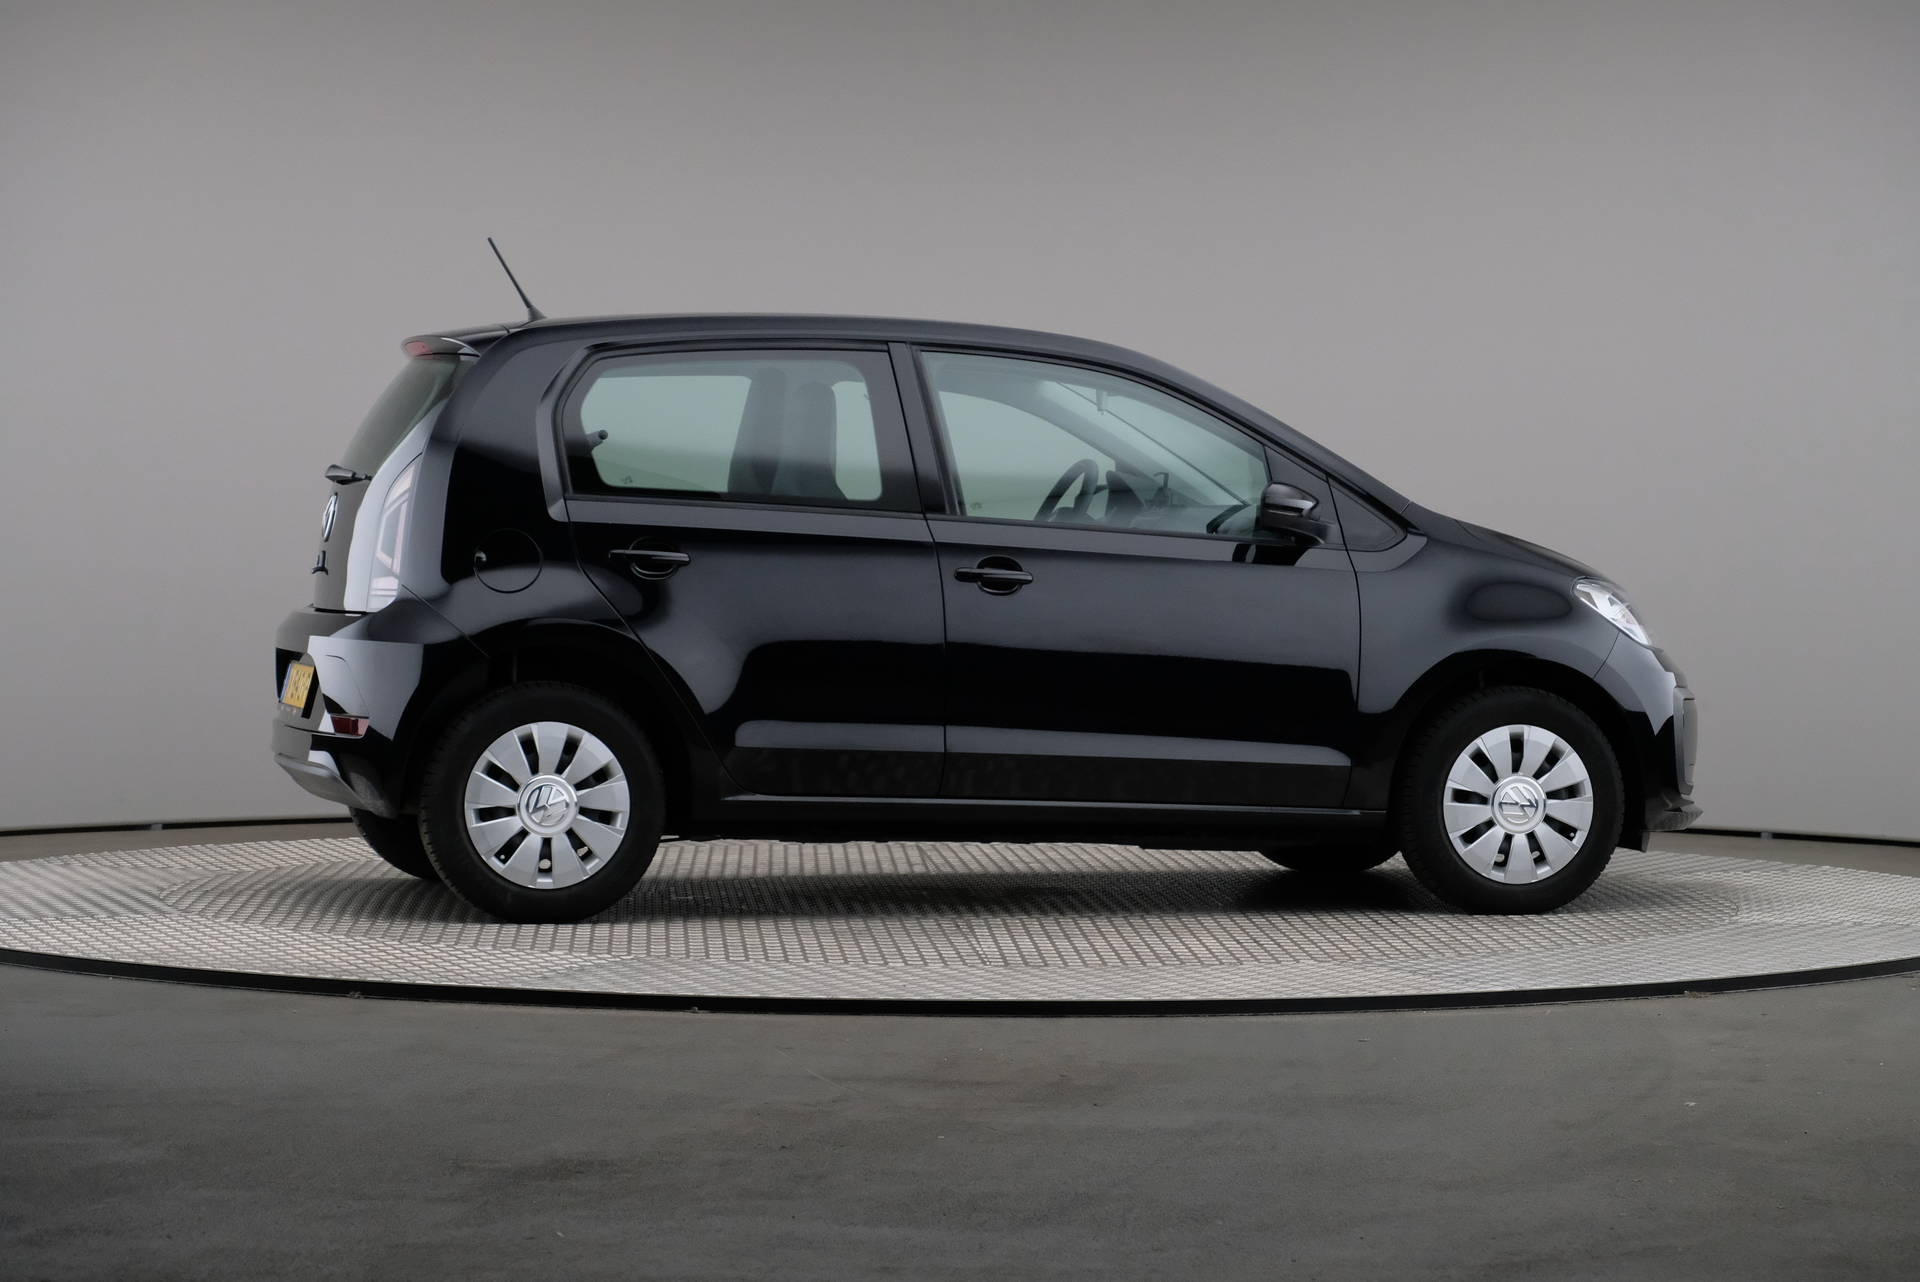 Volkswagen up! 1.0 44kW Move up! BlueMotion Technology, Airconditioning, 360-image22